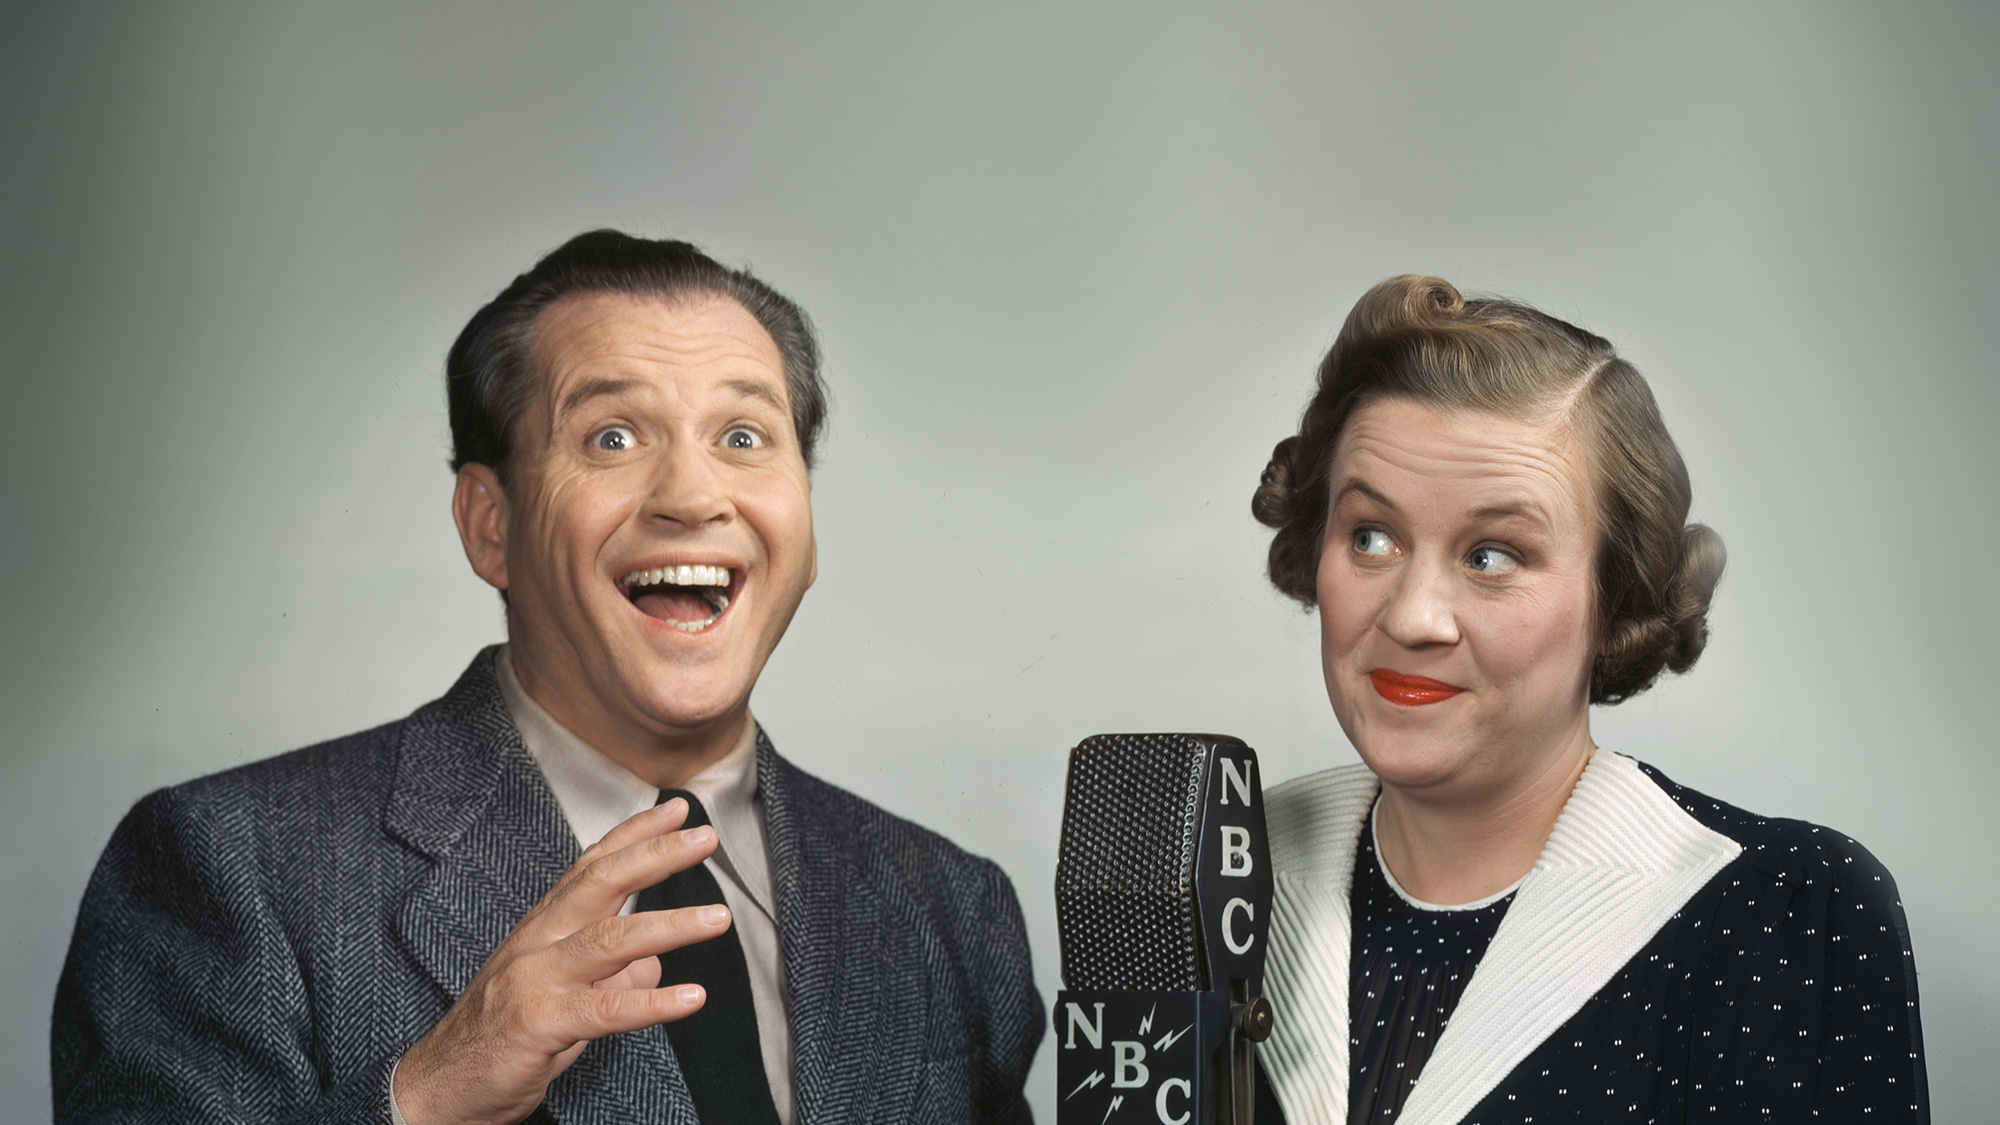 Fibber McGee et Molly McGee, le duo comique du programme radio « Fibber McGee and Molly ».